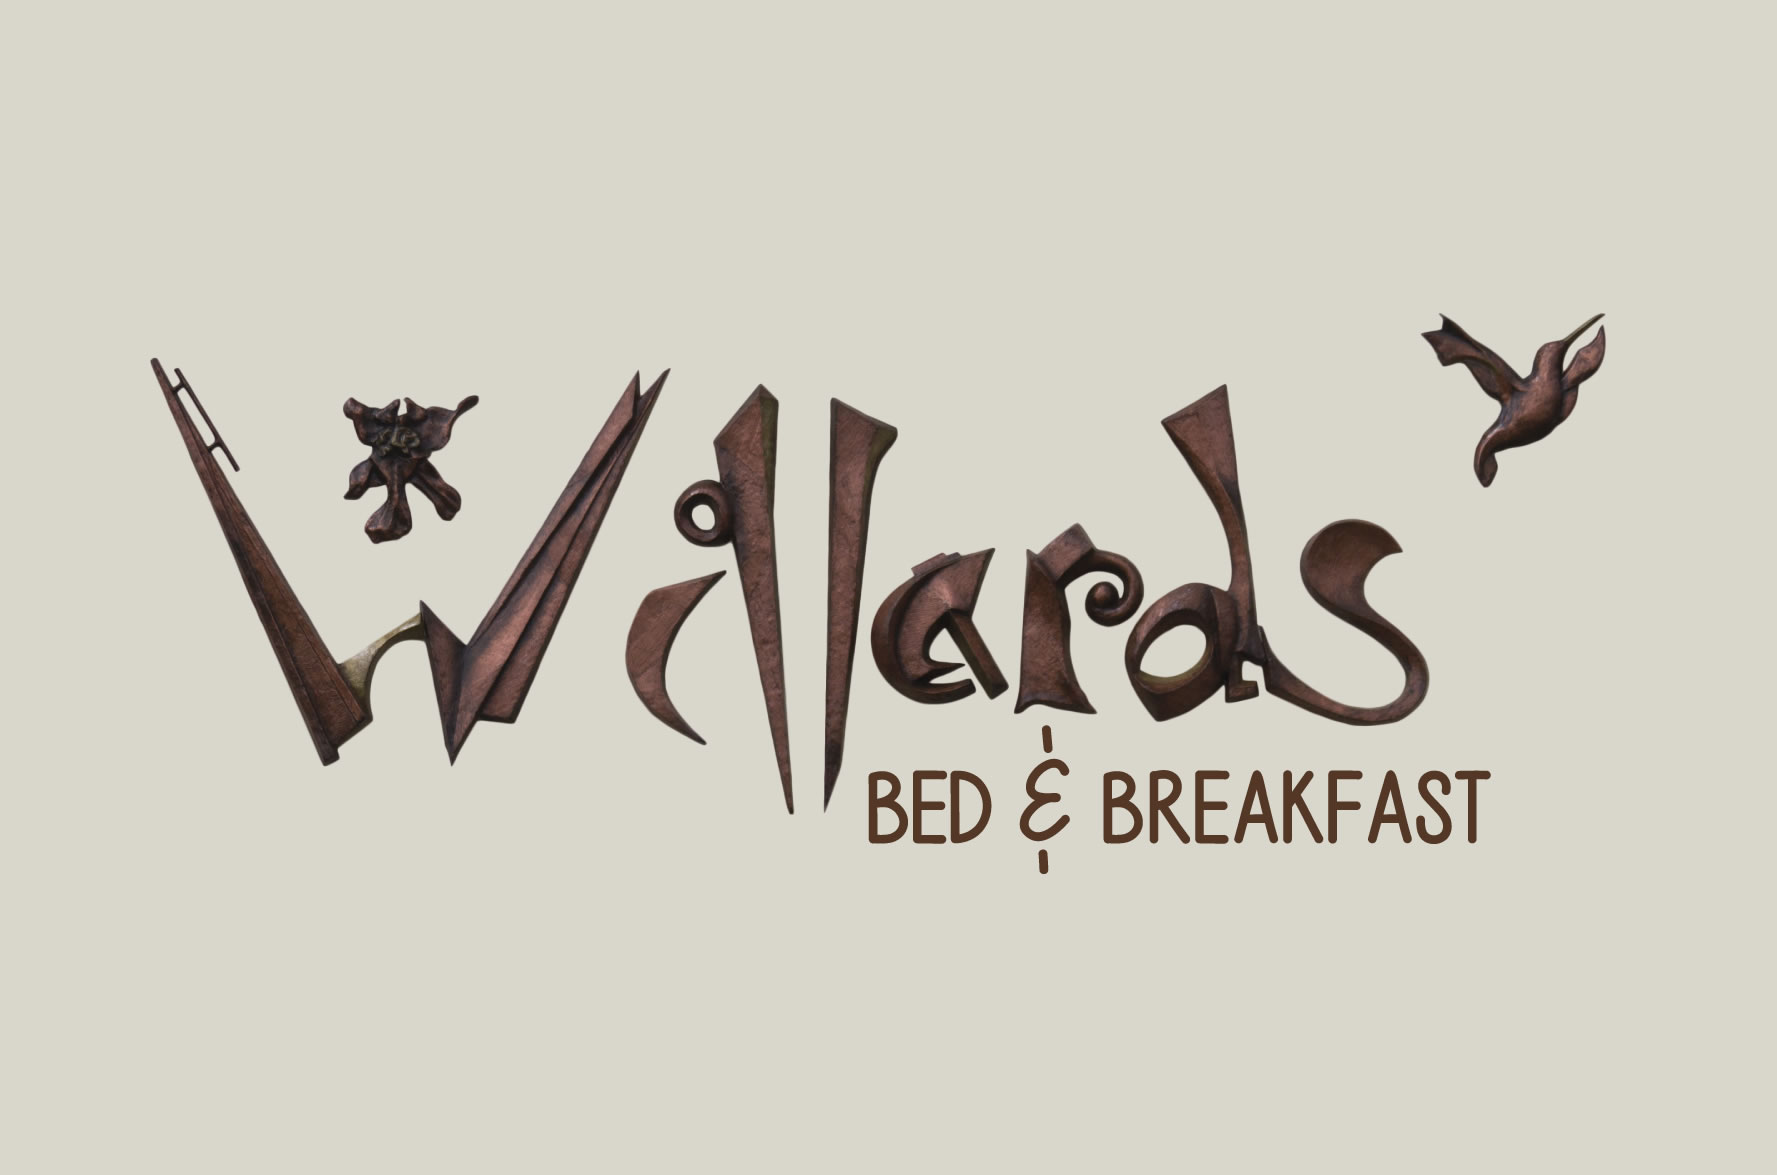 willards-logo